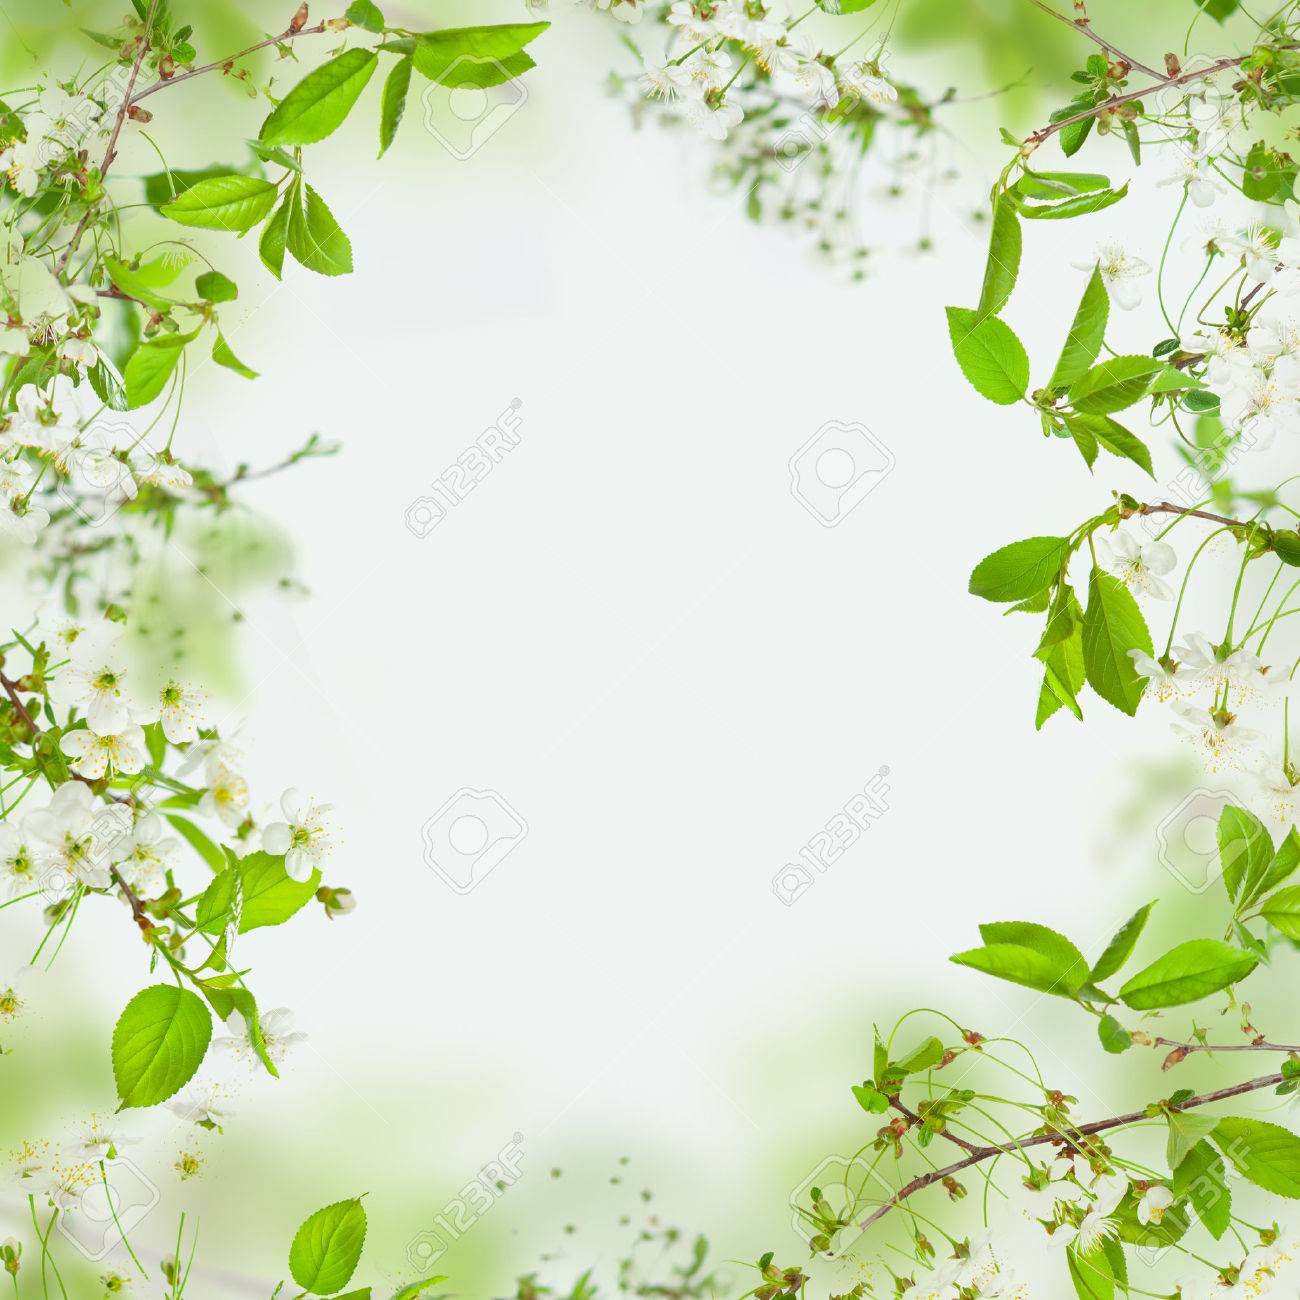 spring nature background frame of flowers and green leaves stock photo picture and royalty free image image 66690218 spring nature background frame of flowers and green leaves